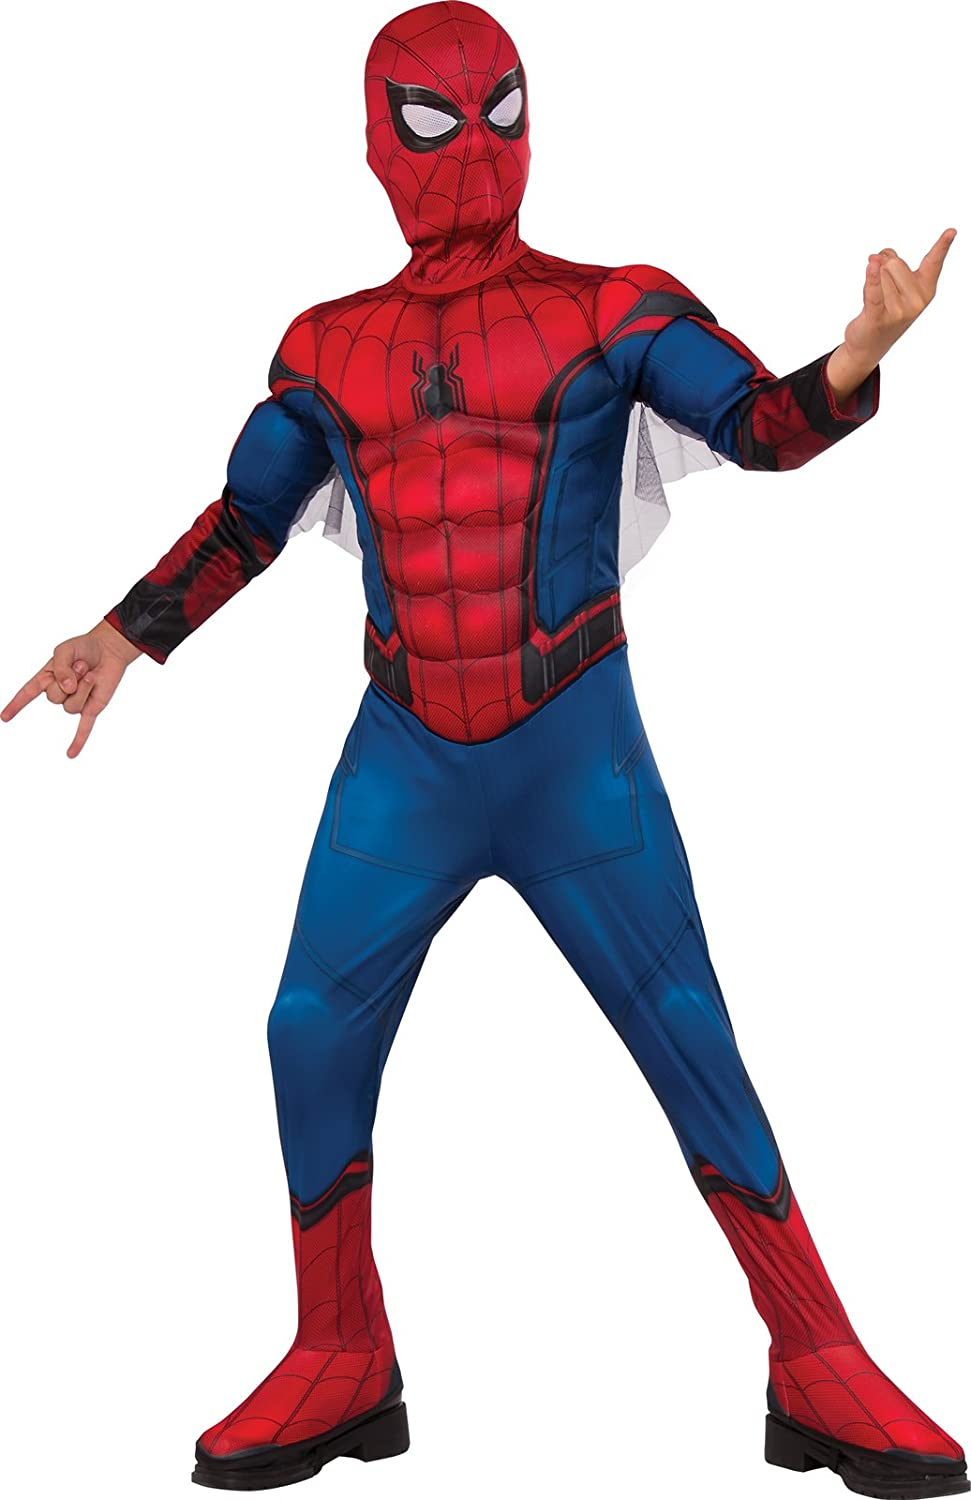 Rubie's Costume Spider-Man Homecoming Muscle Chest Costume, Small, Multicolor Rubies - Domestic 630731_S